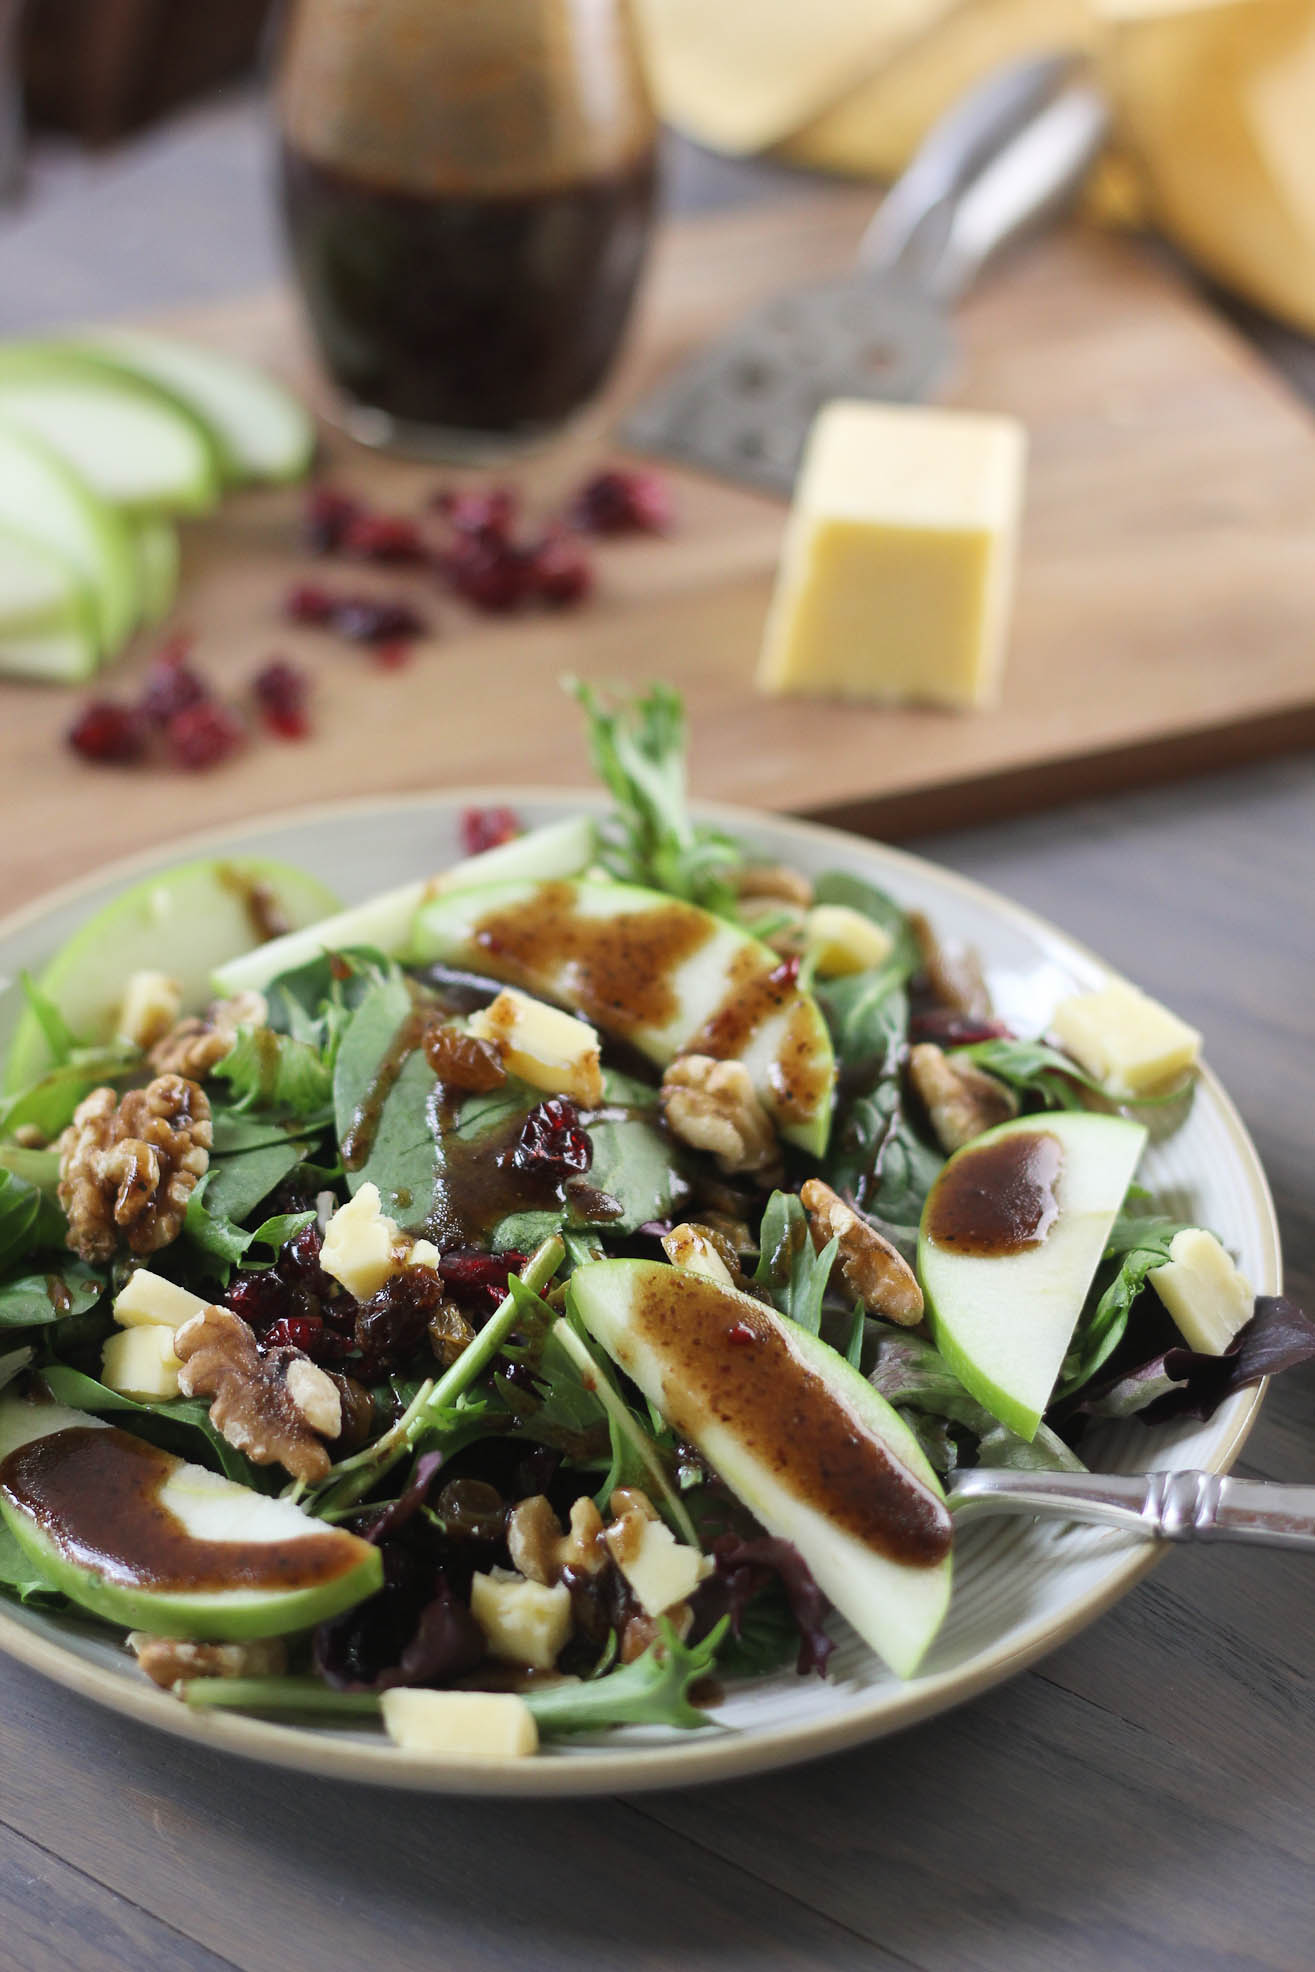 Cheddar & Apple Winter Salad | Bake Your Day